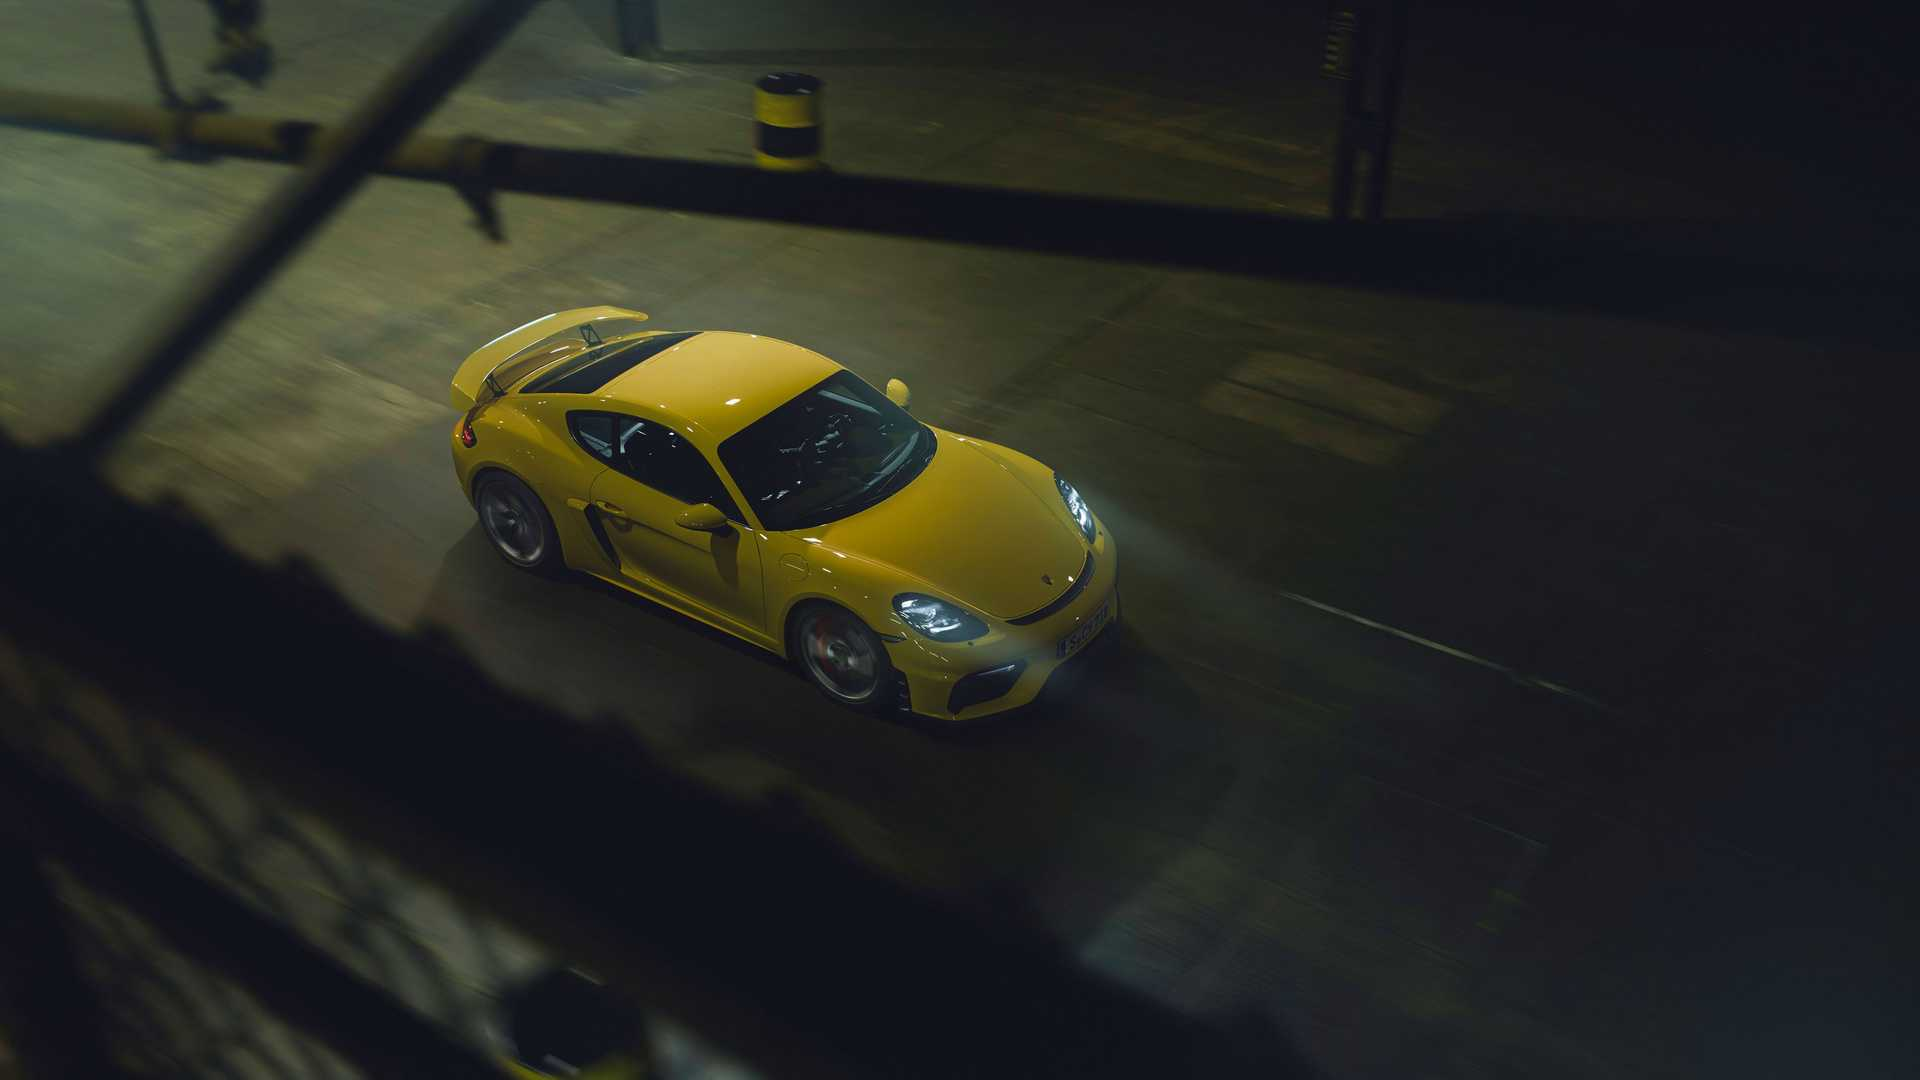 Porsche 718 Cayman GT4 and 718 Boxster Spyder: Got The Horses In The